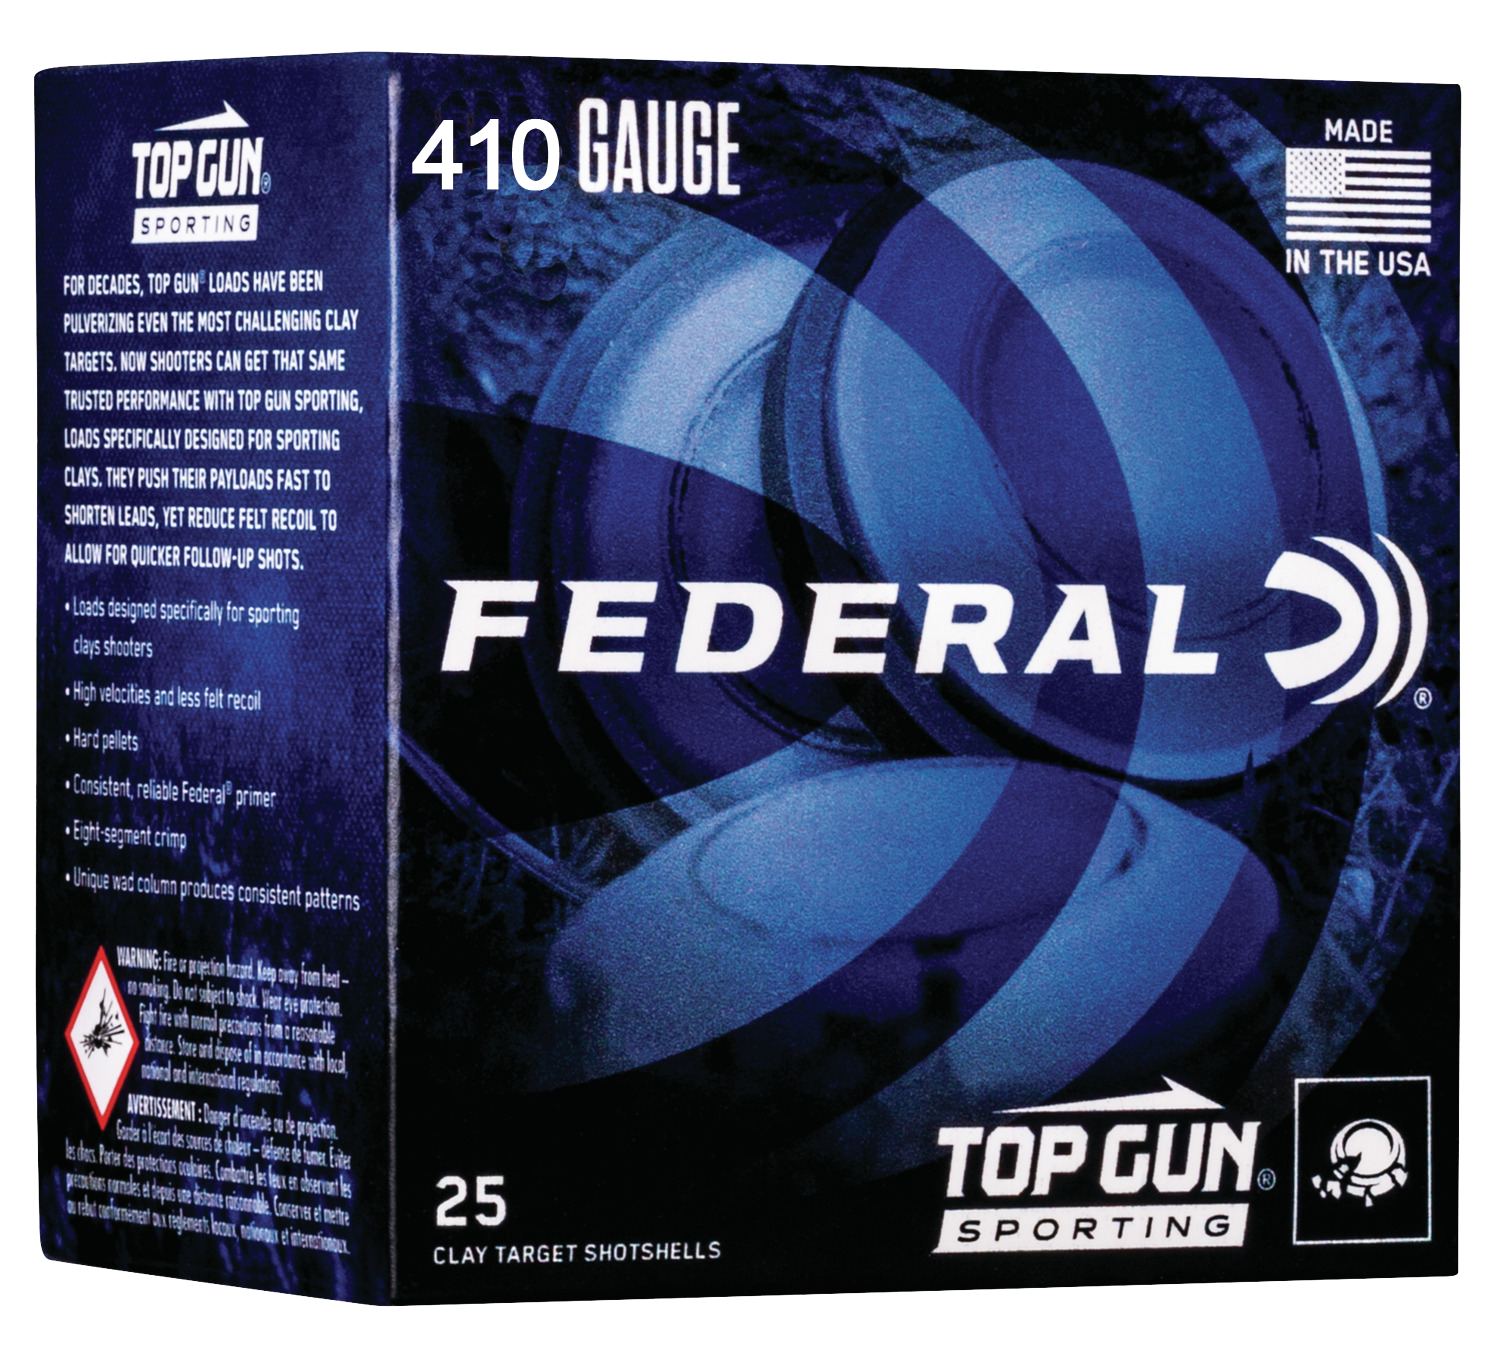 Federal Top Gun Sporting Target Load Ammunition 410 Bore 2-3/4